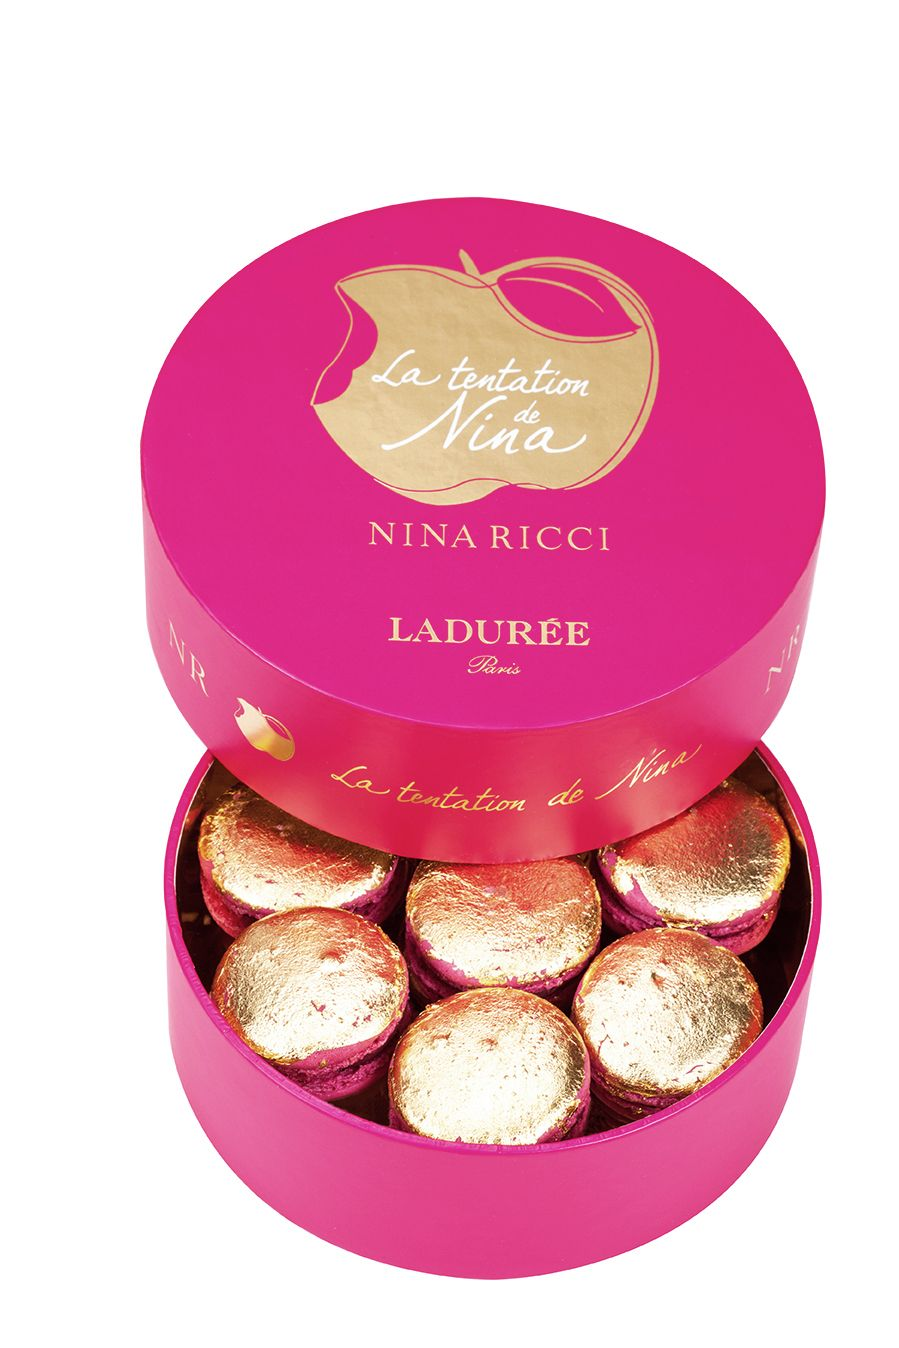 An intense, pink macaron topped with a leaf of gold. An explosion of tastes in the mouth, with raspberries, lemons, roses and almonds. This creation in osmosis heightens temptation.